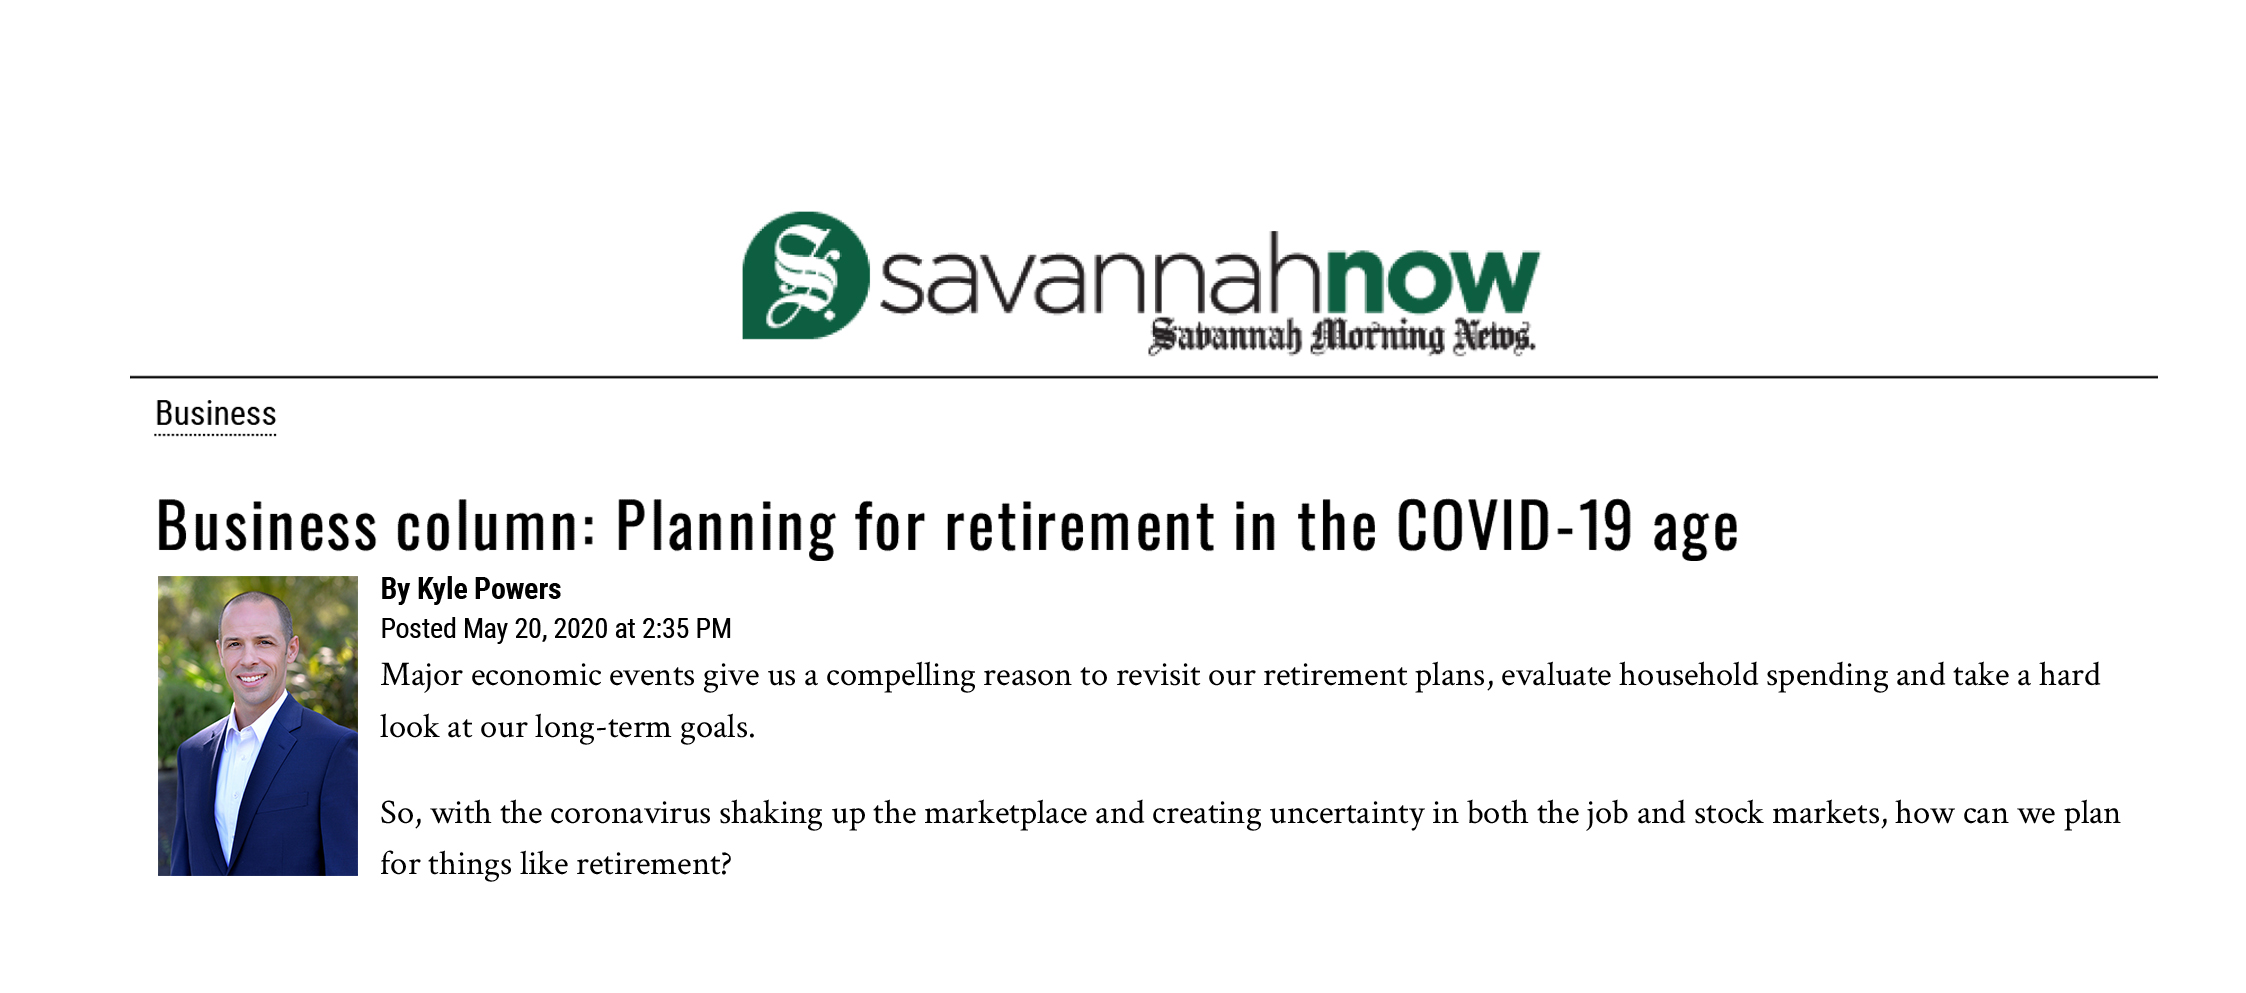 Planning for Retirement in the COVID-19 Age